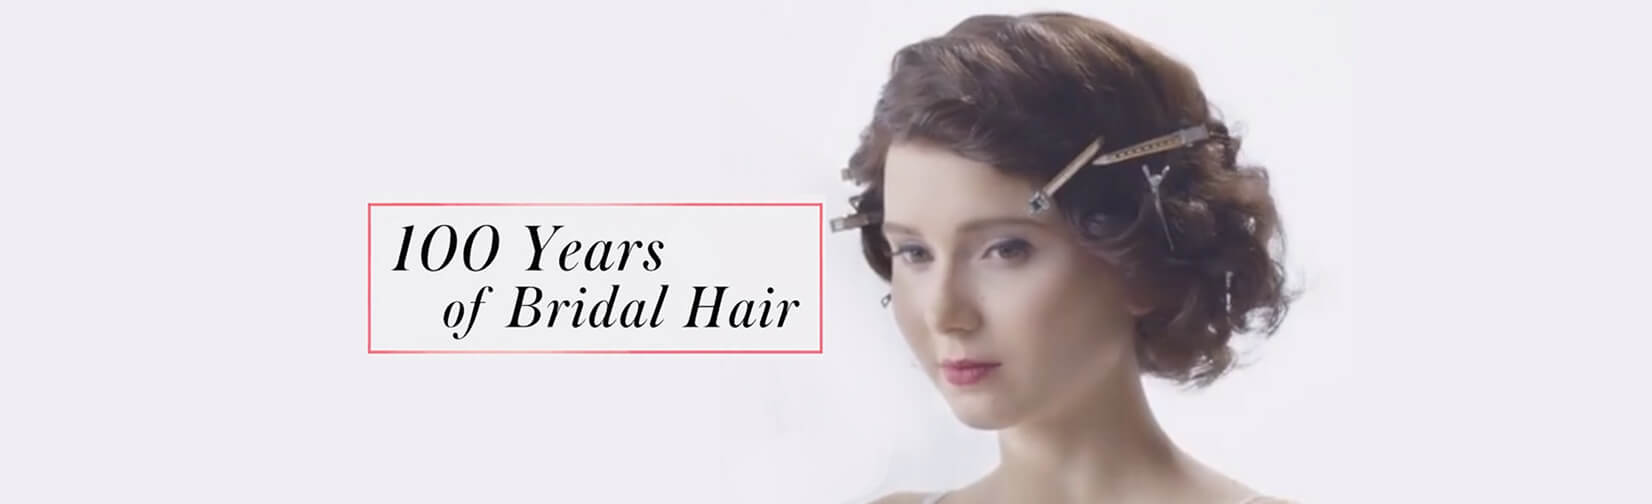 The evolution of wedding hair from 1920 to today